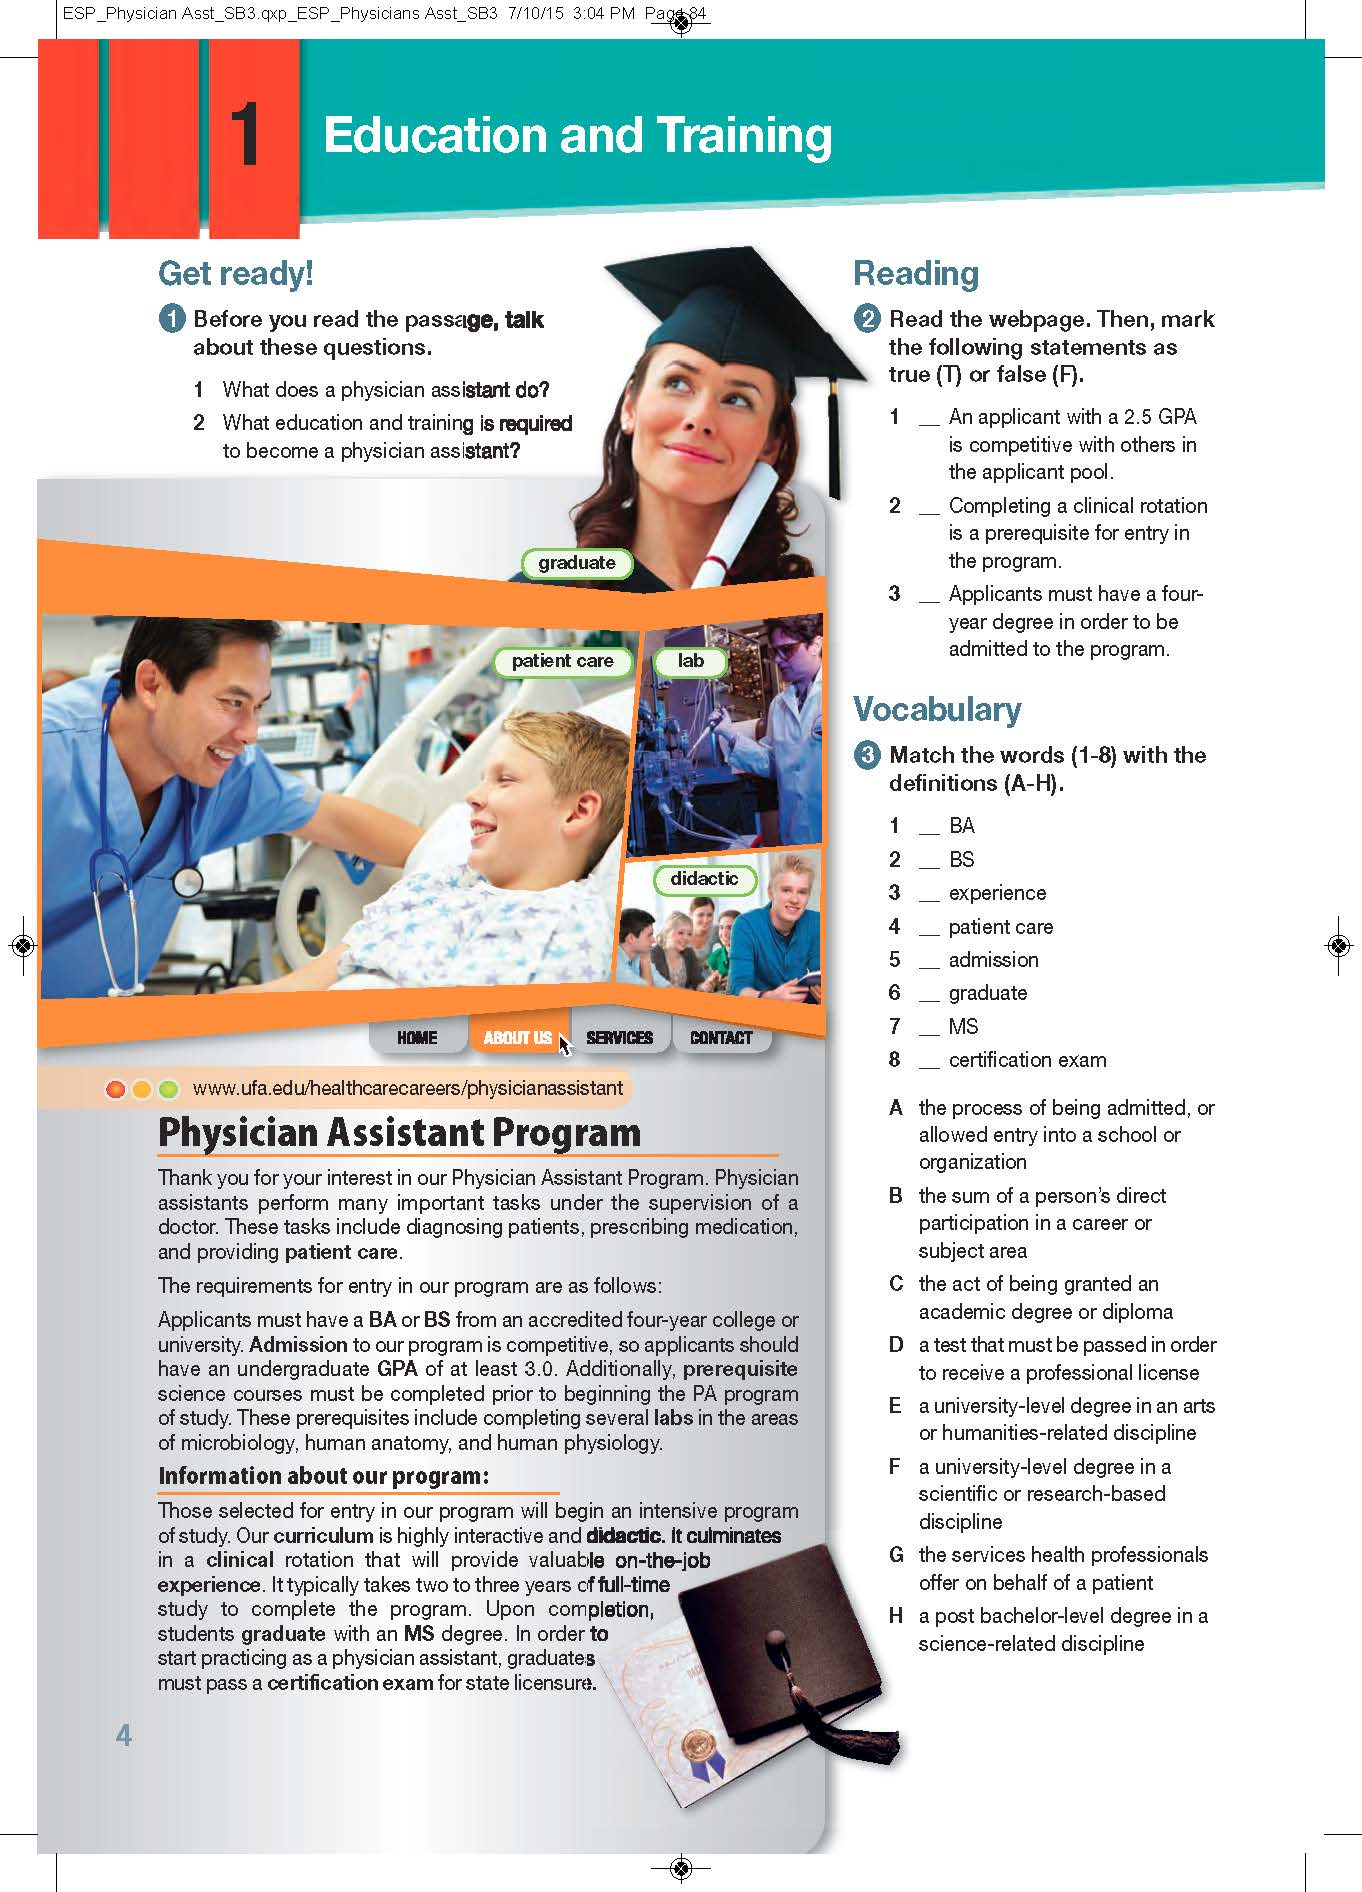 ESP English for Specific Purposes - Career Paths: Physician Assistant - Sample Page 1